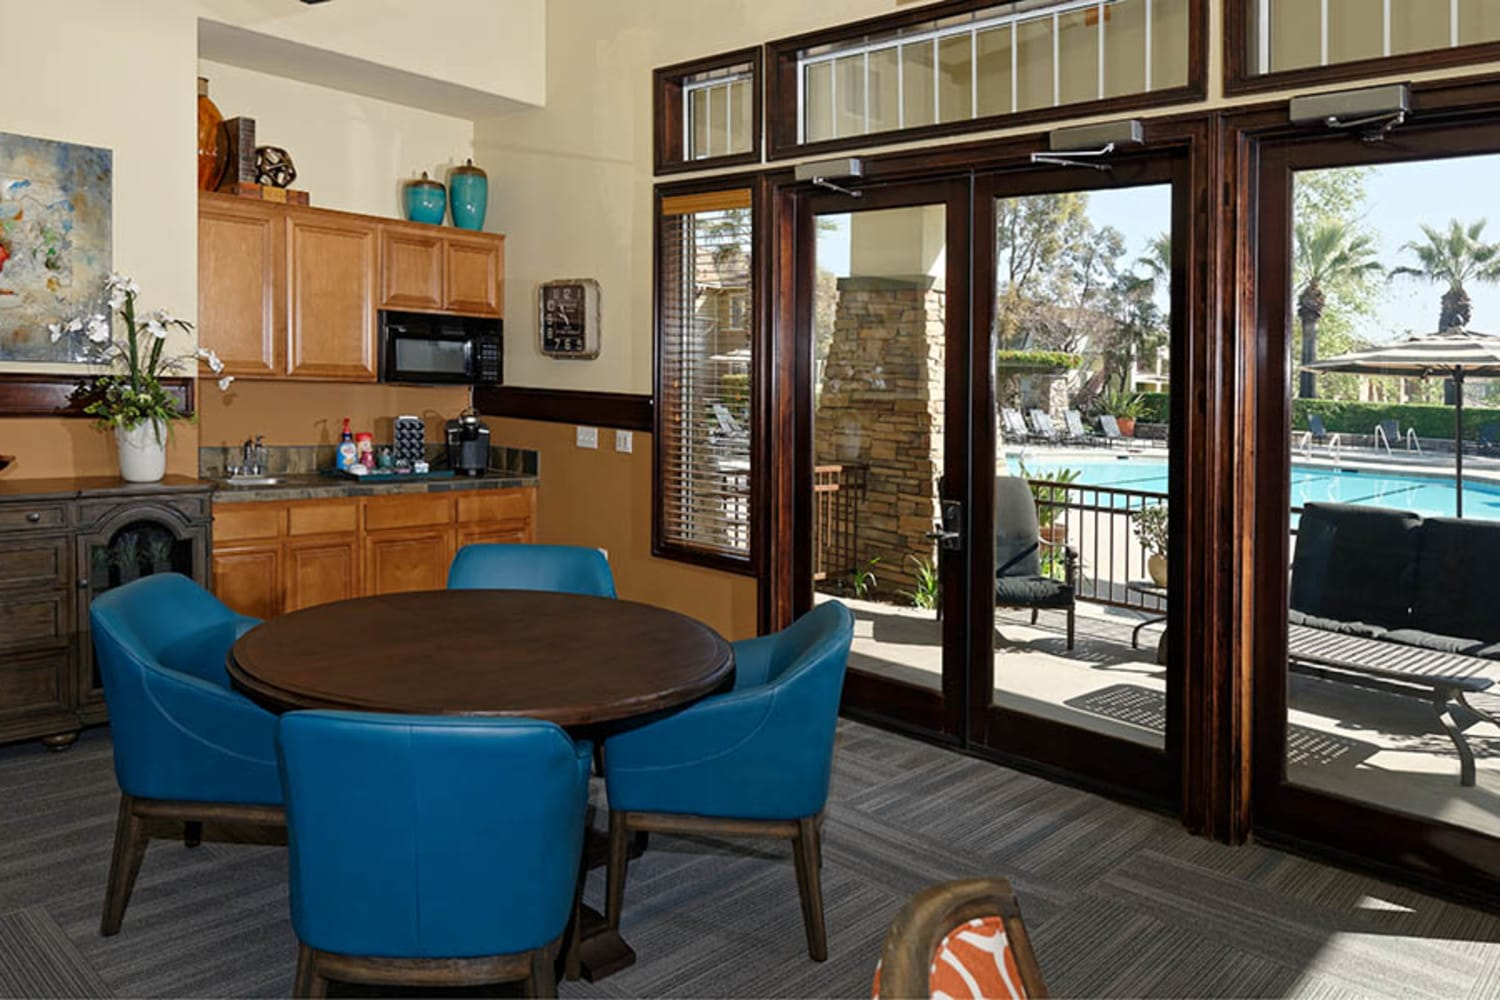 Camino Real offers a clubhouse complete with a kitchenette in Rancho Cucamonga, California